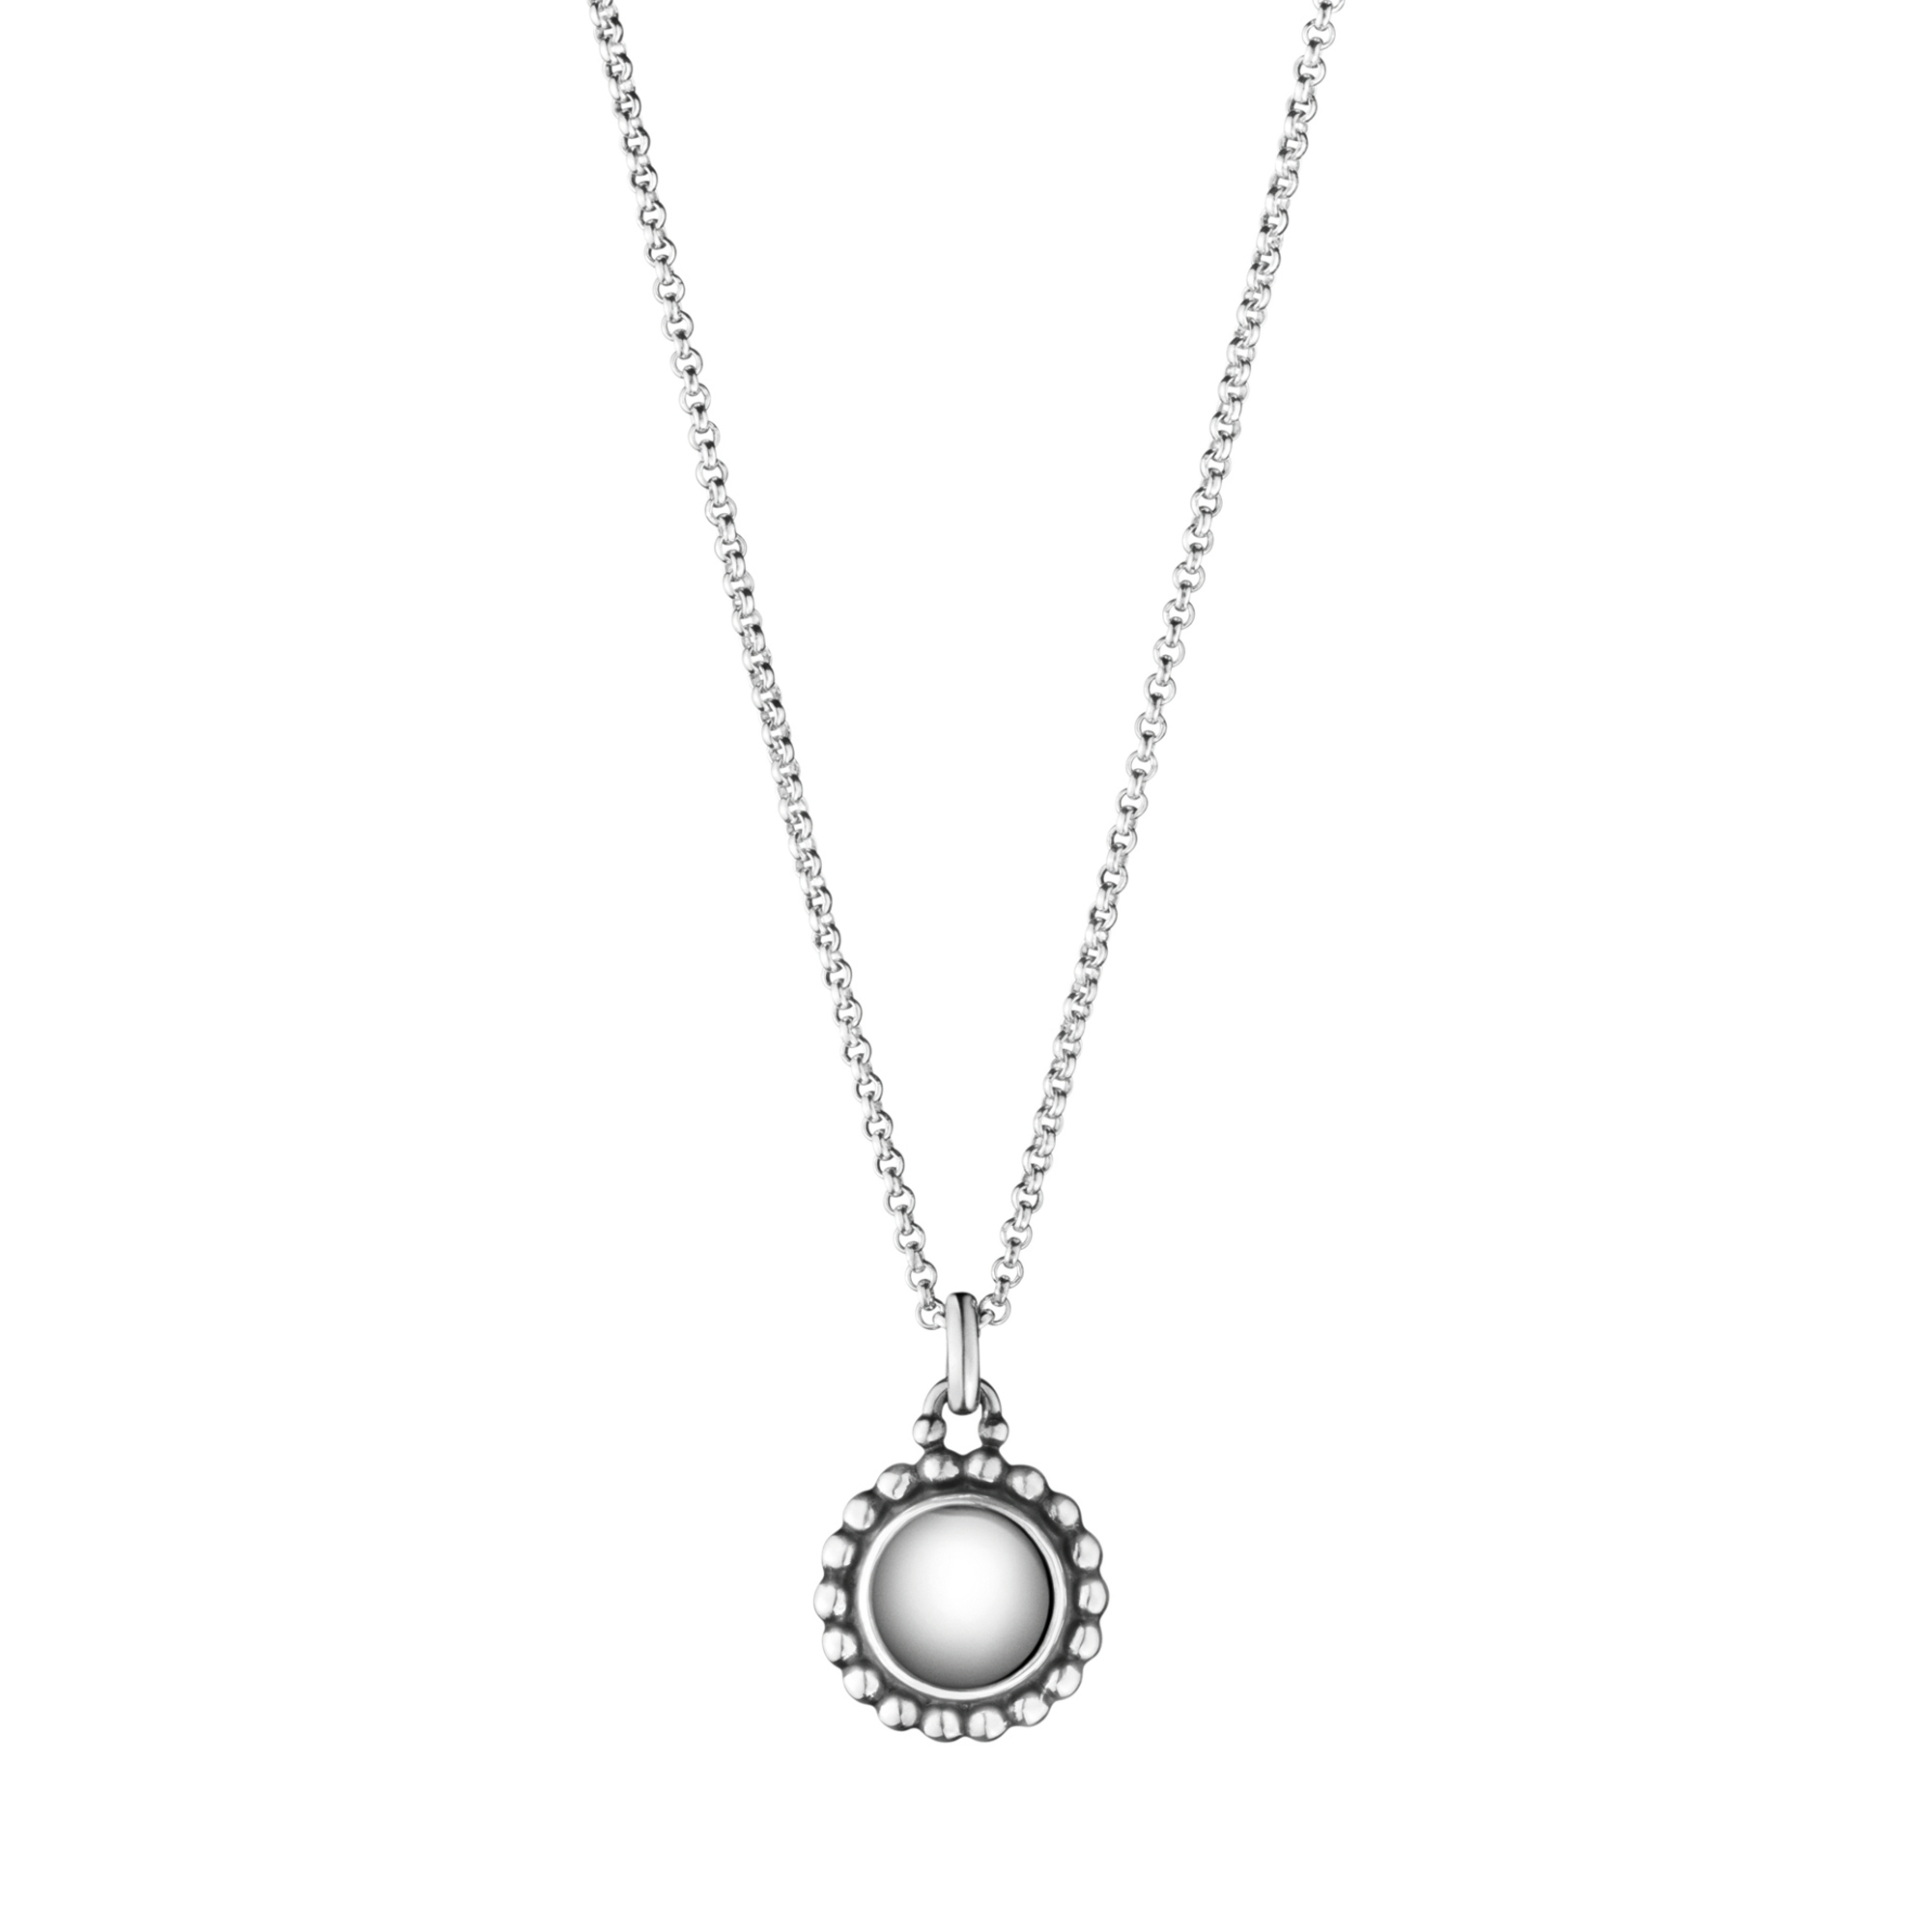 Georg Jensen Moonlight Blossom Oxidized Sterling Silver Stone Pendant Necklace